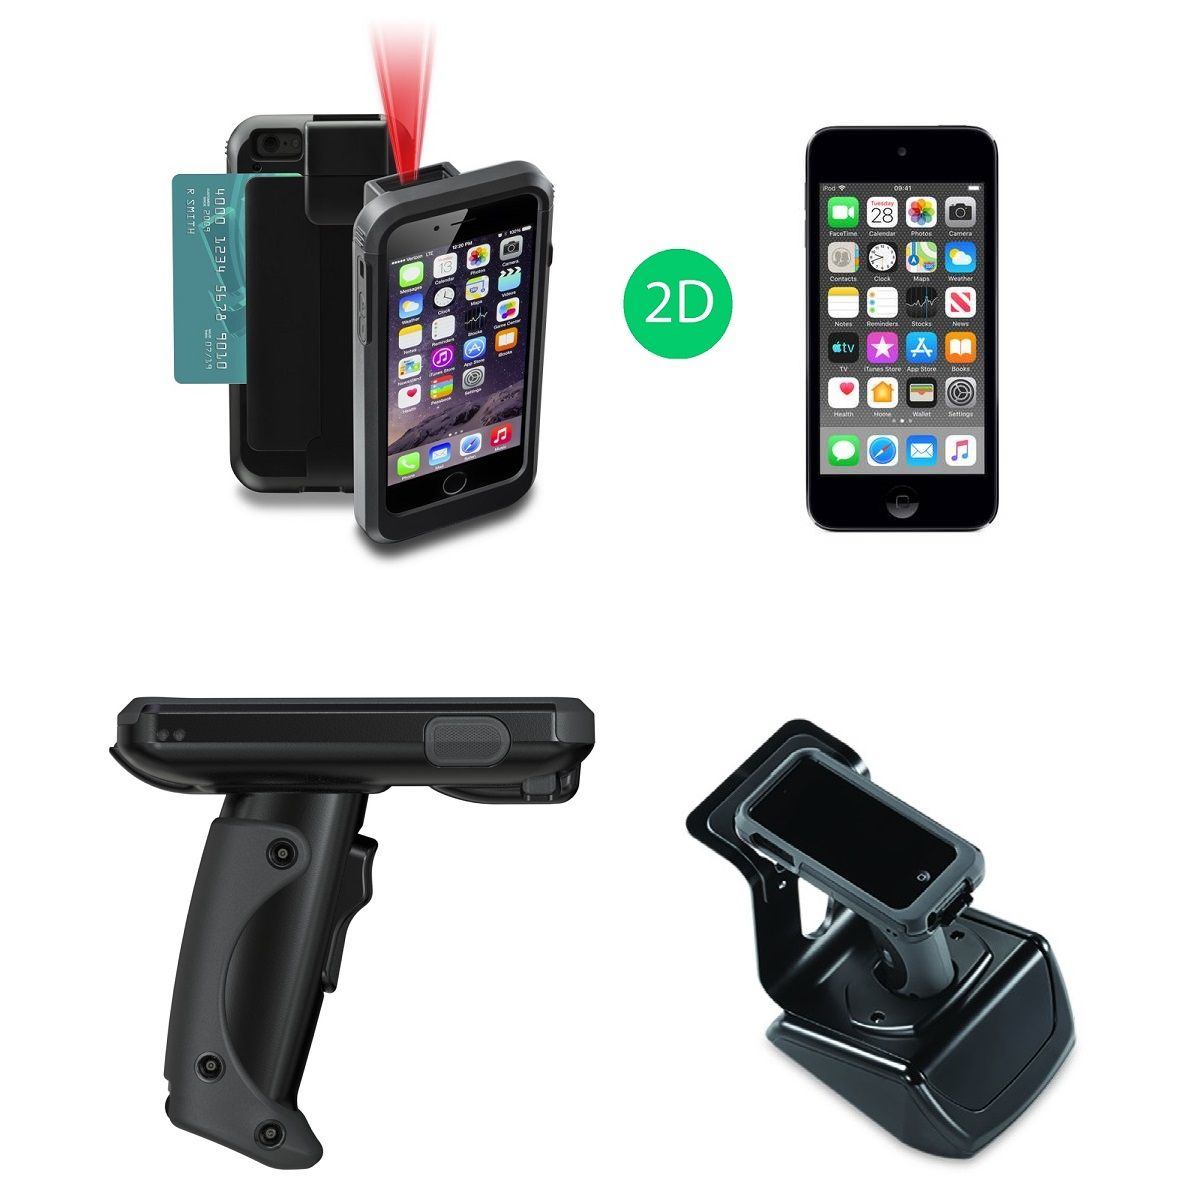 Linea Pro 5 Scanner Bundle with iPod, Pistol Grip & Charger